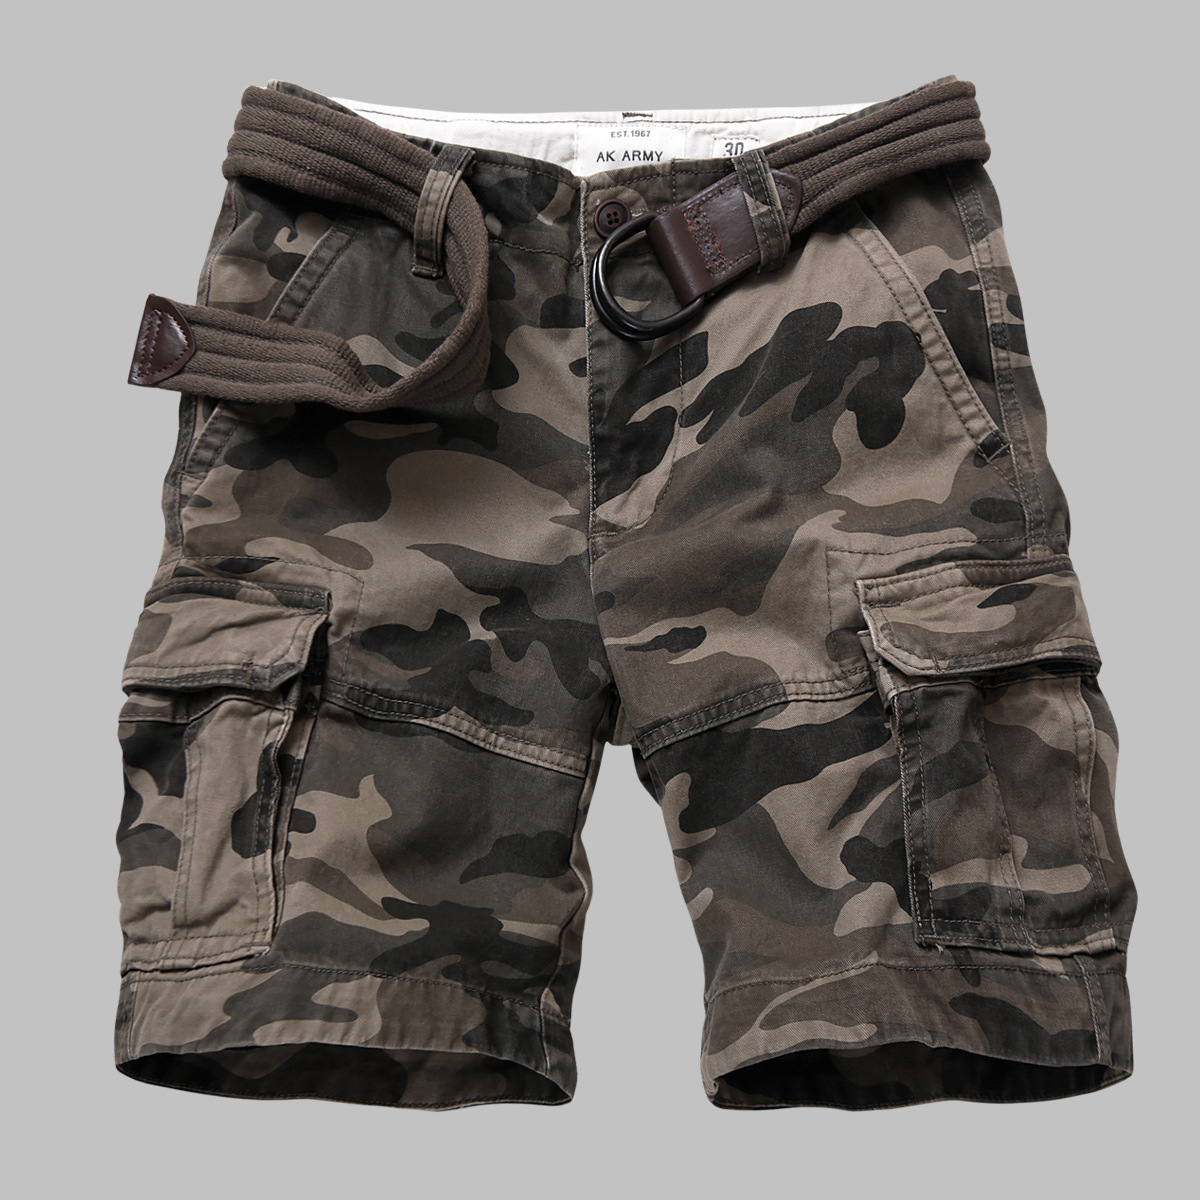 Streetwear Camouflage Cargo Shorts Men Casual Military Army Style Shorts Loose Baggy Pockets Shorts Male Clothes Sweatpants 4XL